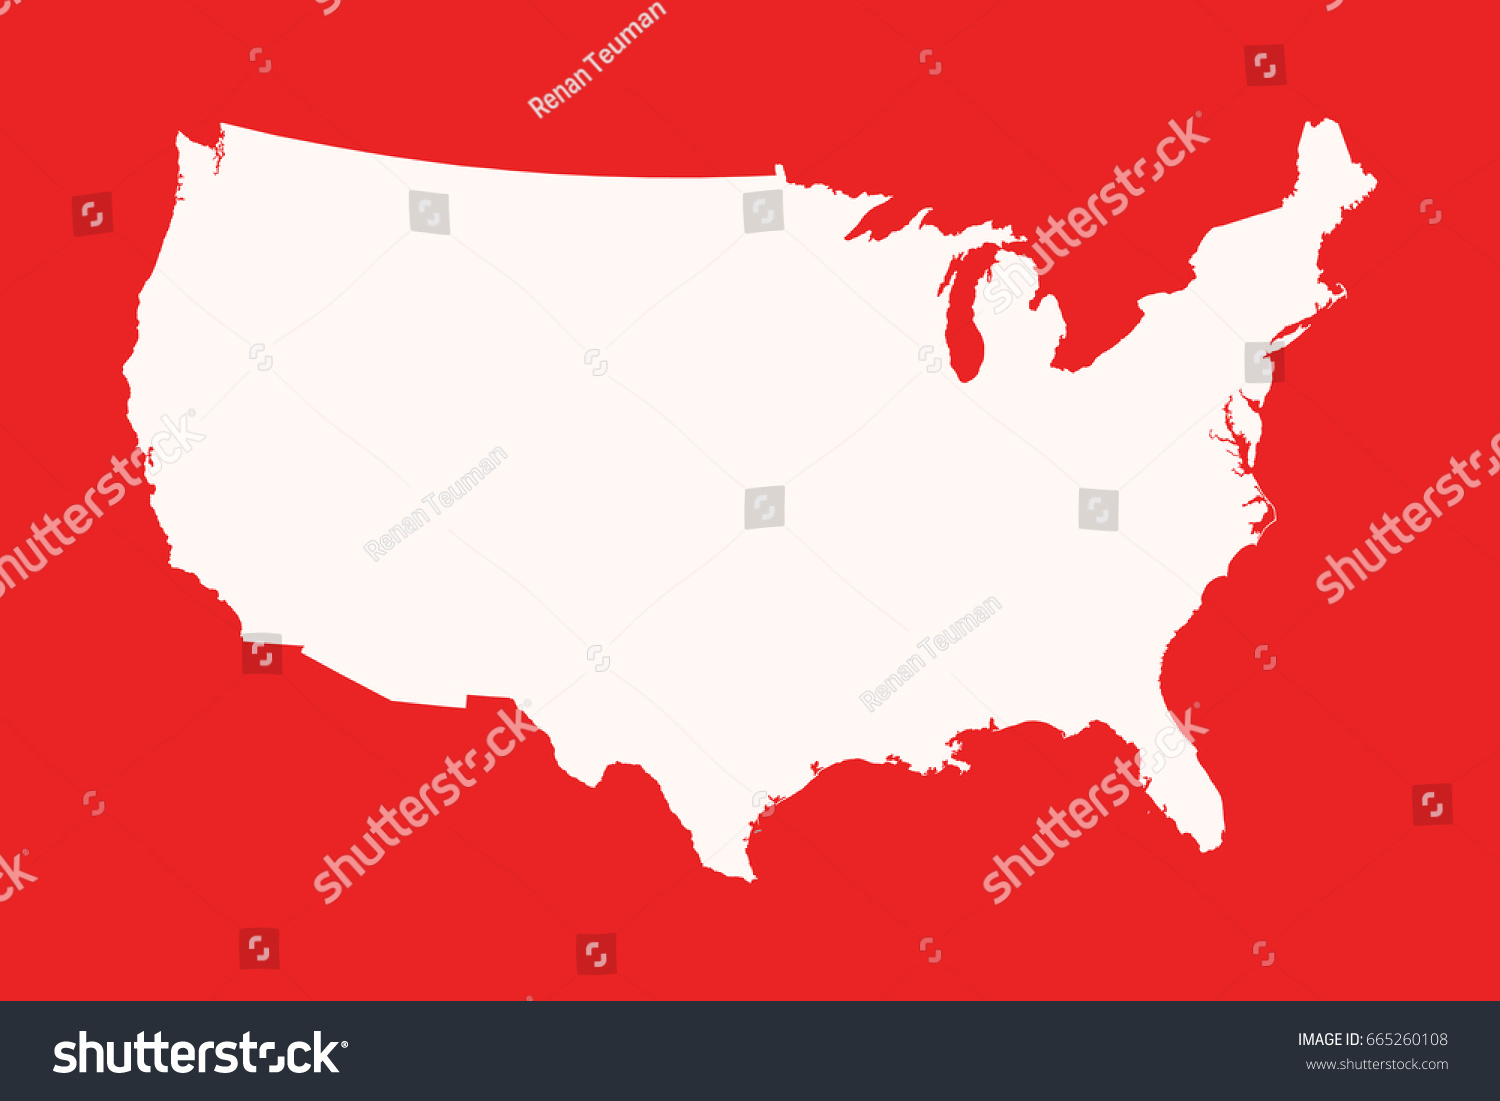 Usa Map Silhouette Stock Vector Shutterstock - Pictures of usa map